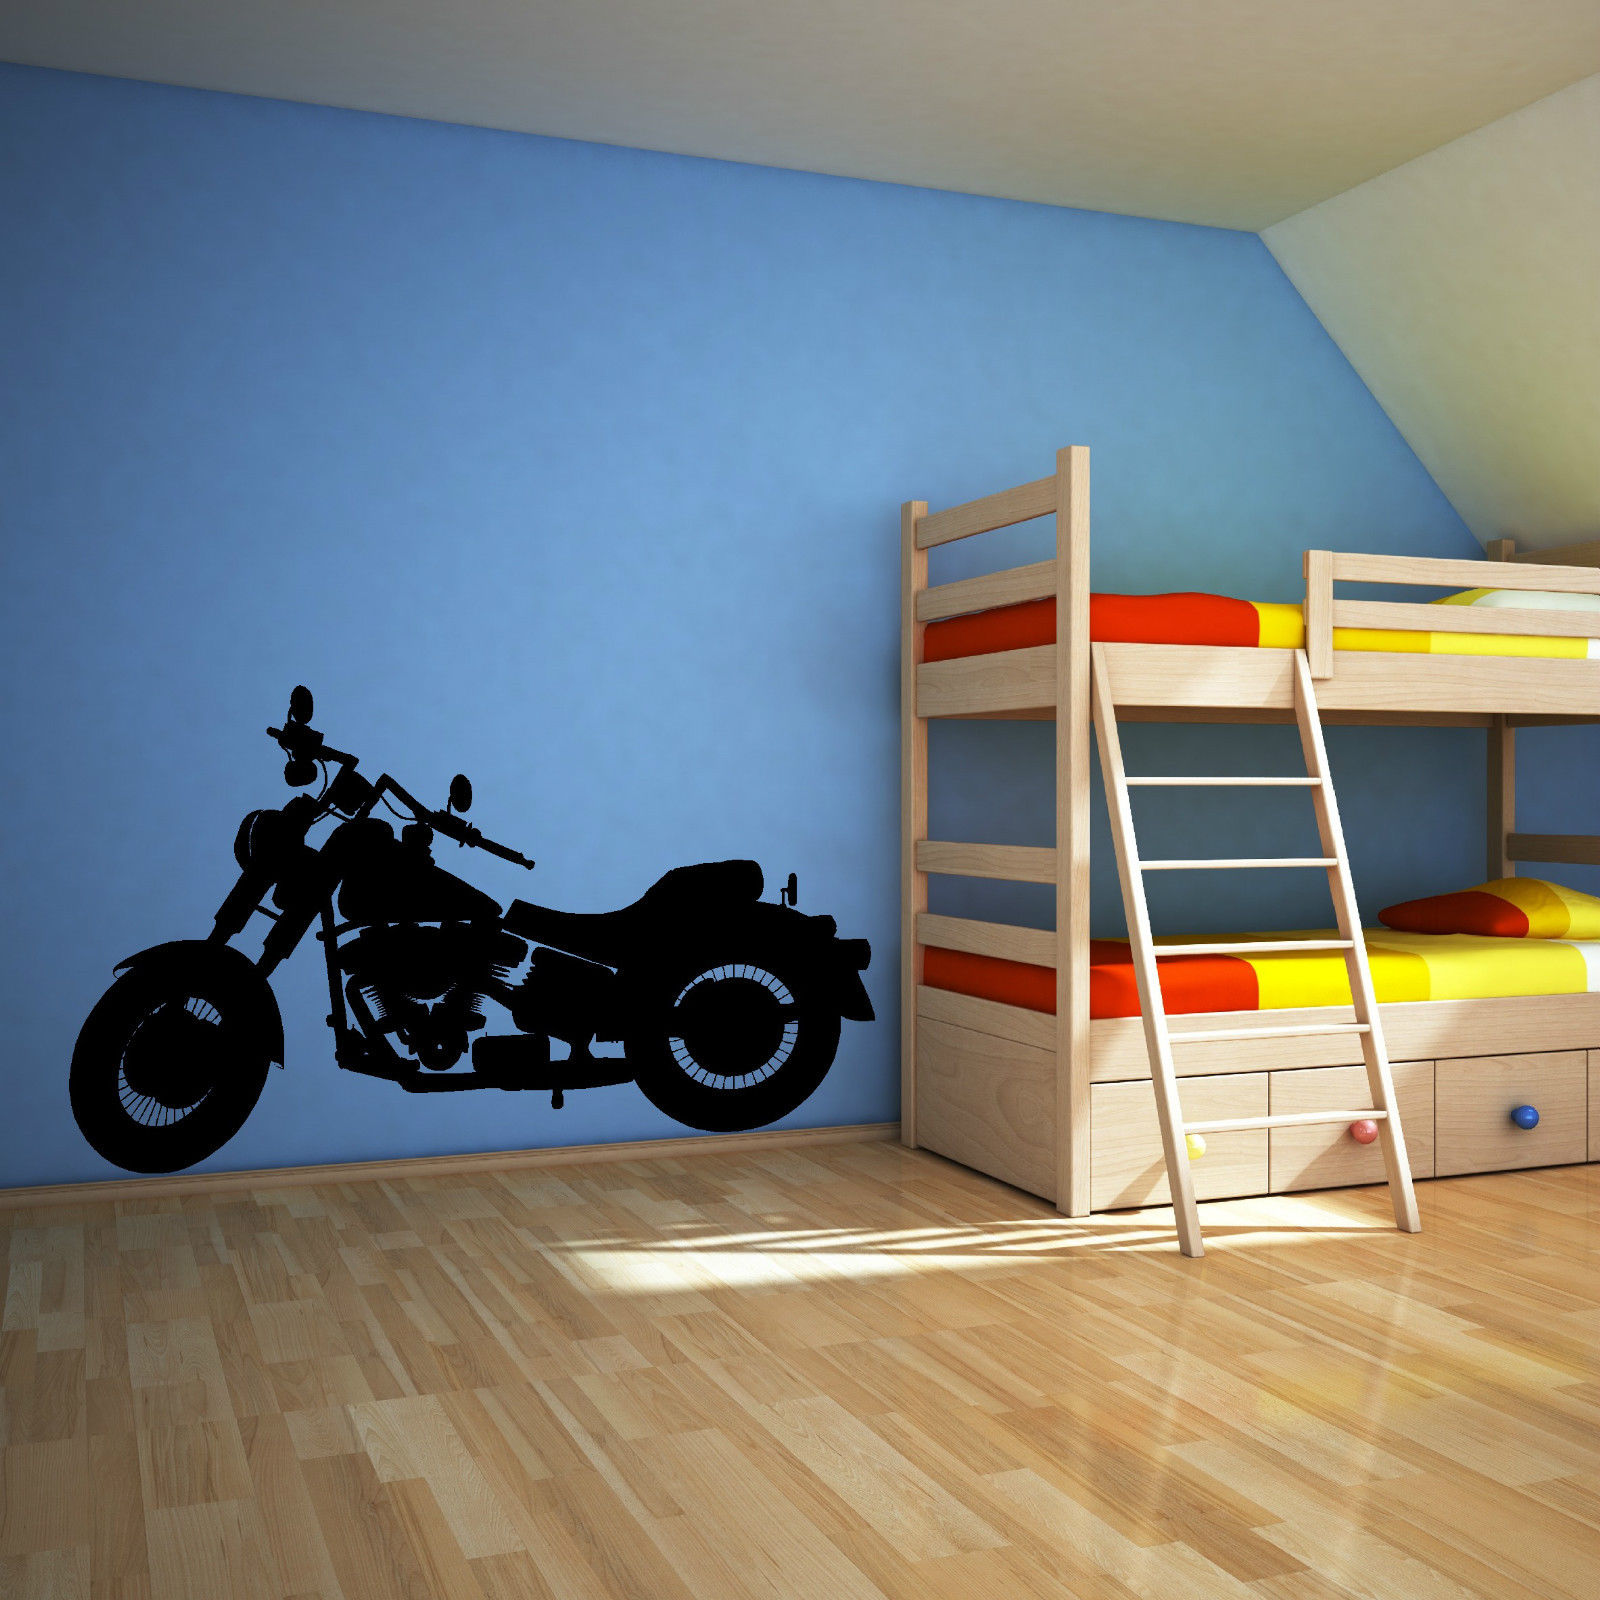 Stickers Decoration Porte Interieur Us 14 99 G142 Harley Davidson Motorbike Chopper Vinyl Wall Art Sticker Decal Children Room Wall Stickers Decoration Mural For Home Decor In Wall